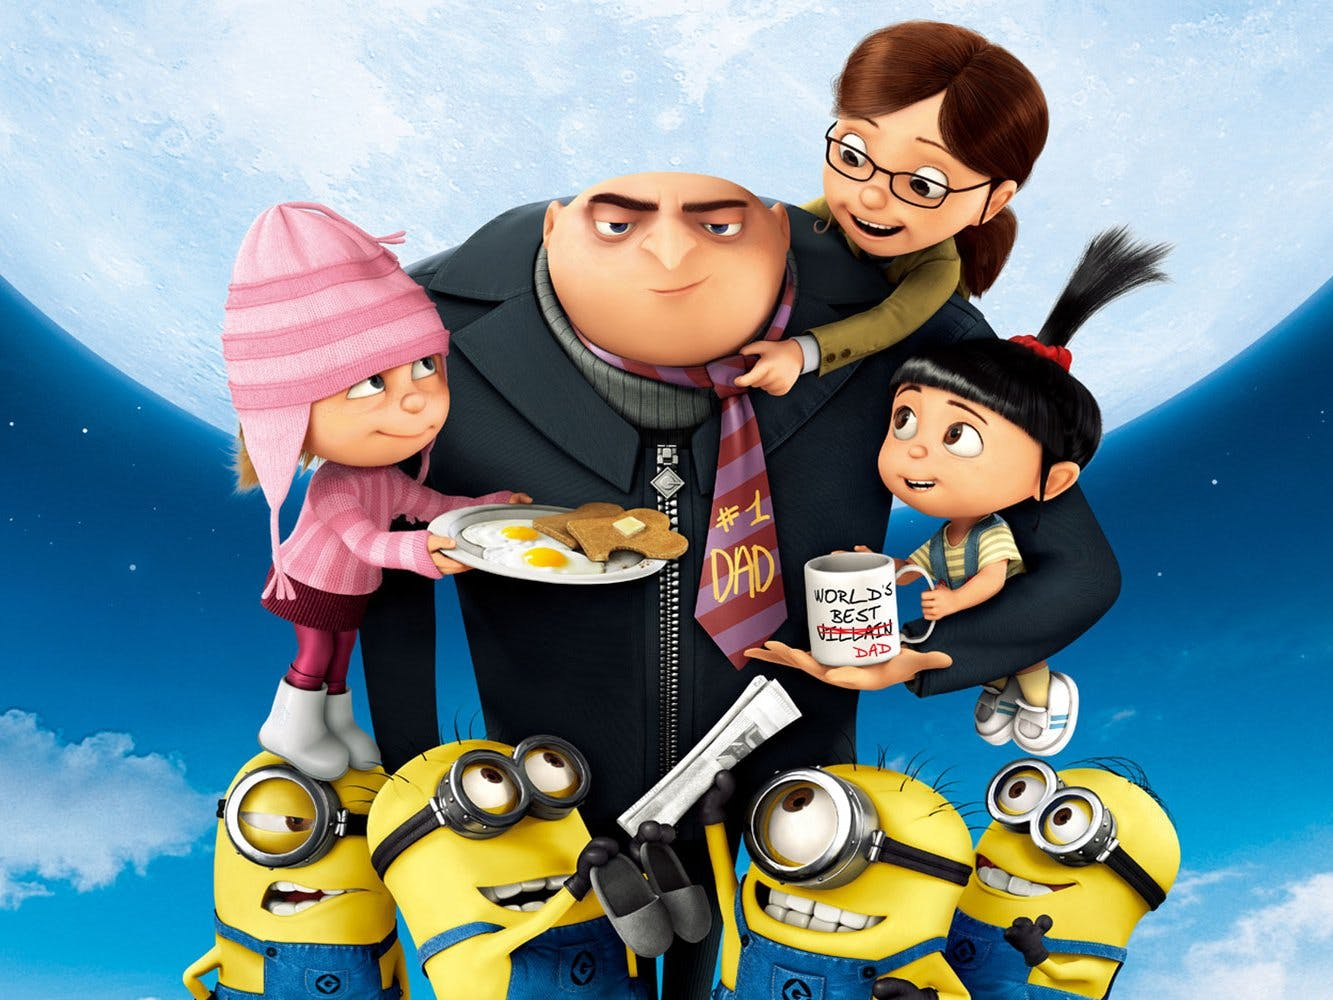 Despicable Me Character Description - Alexa